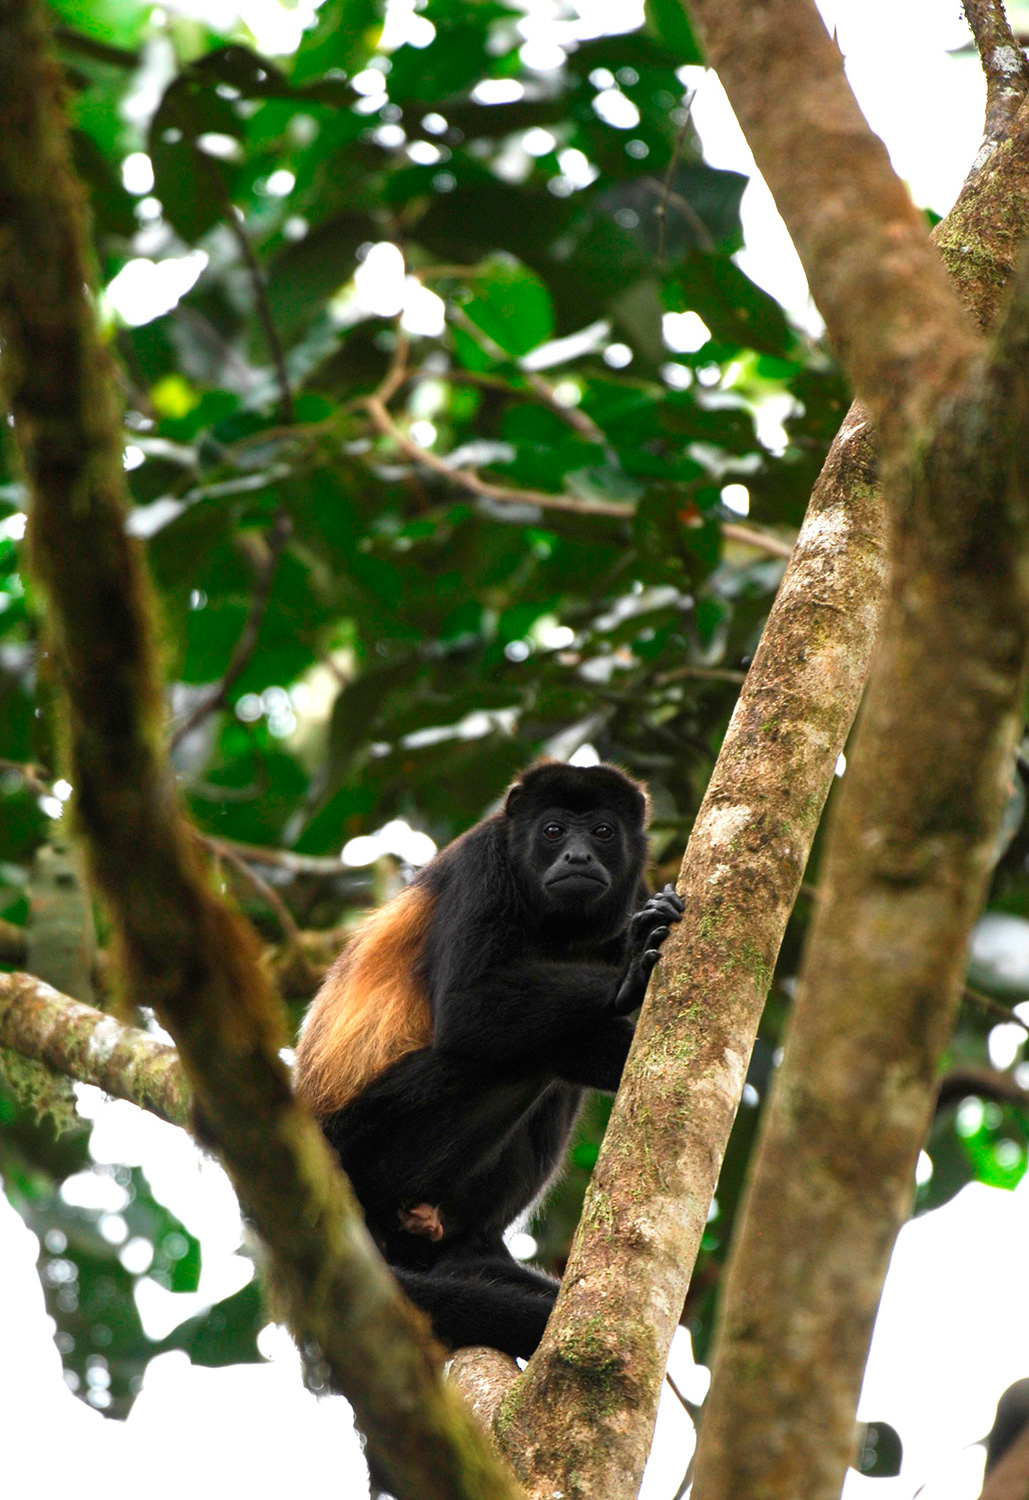 A monkey standing on a tree branch